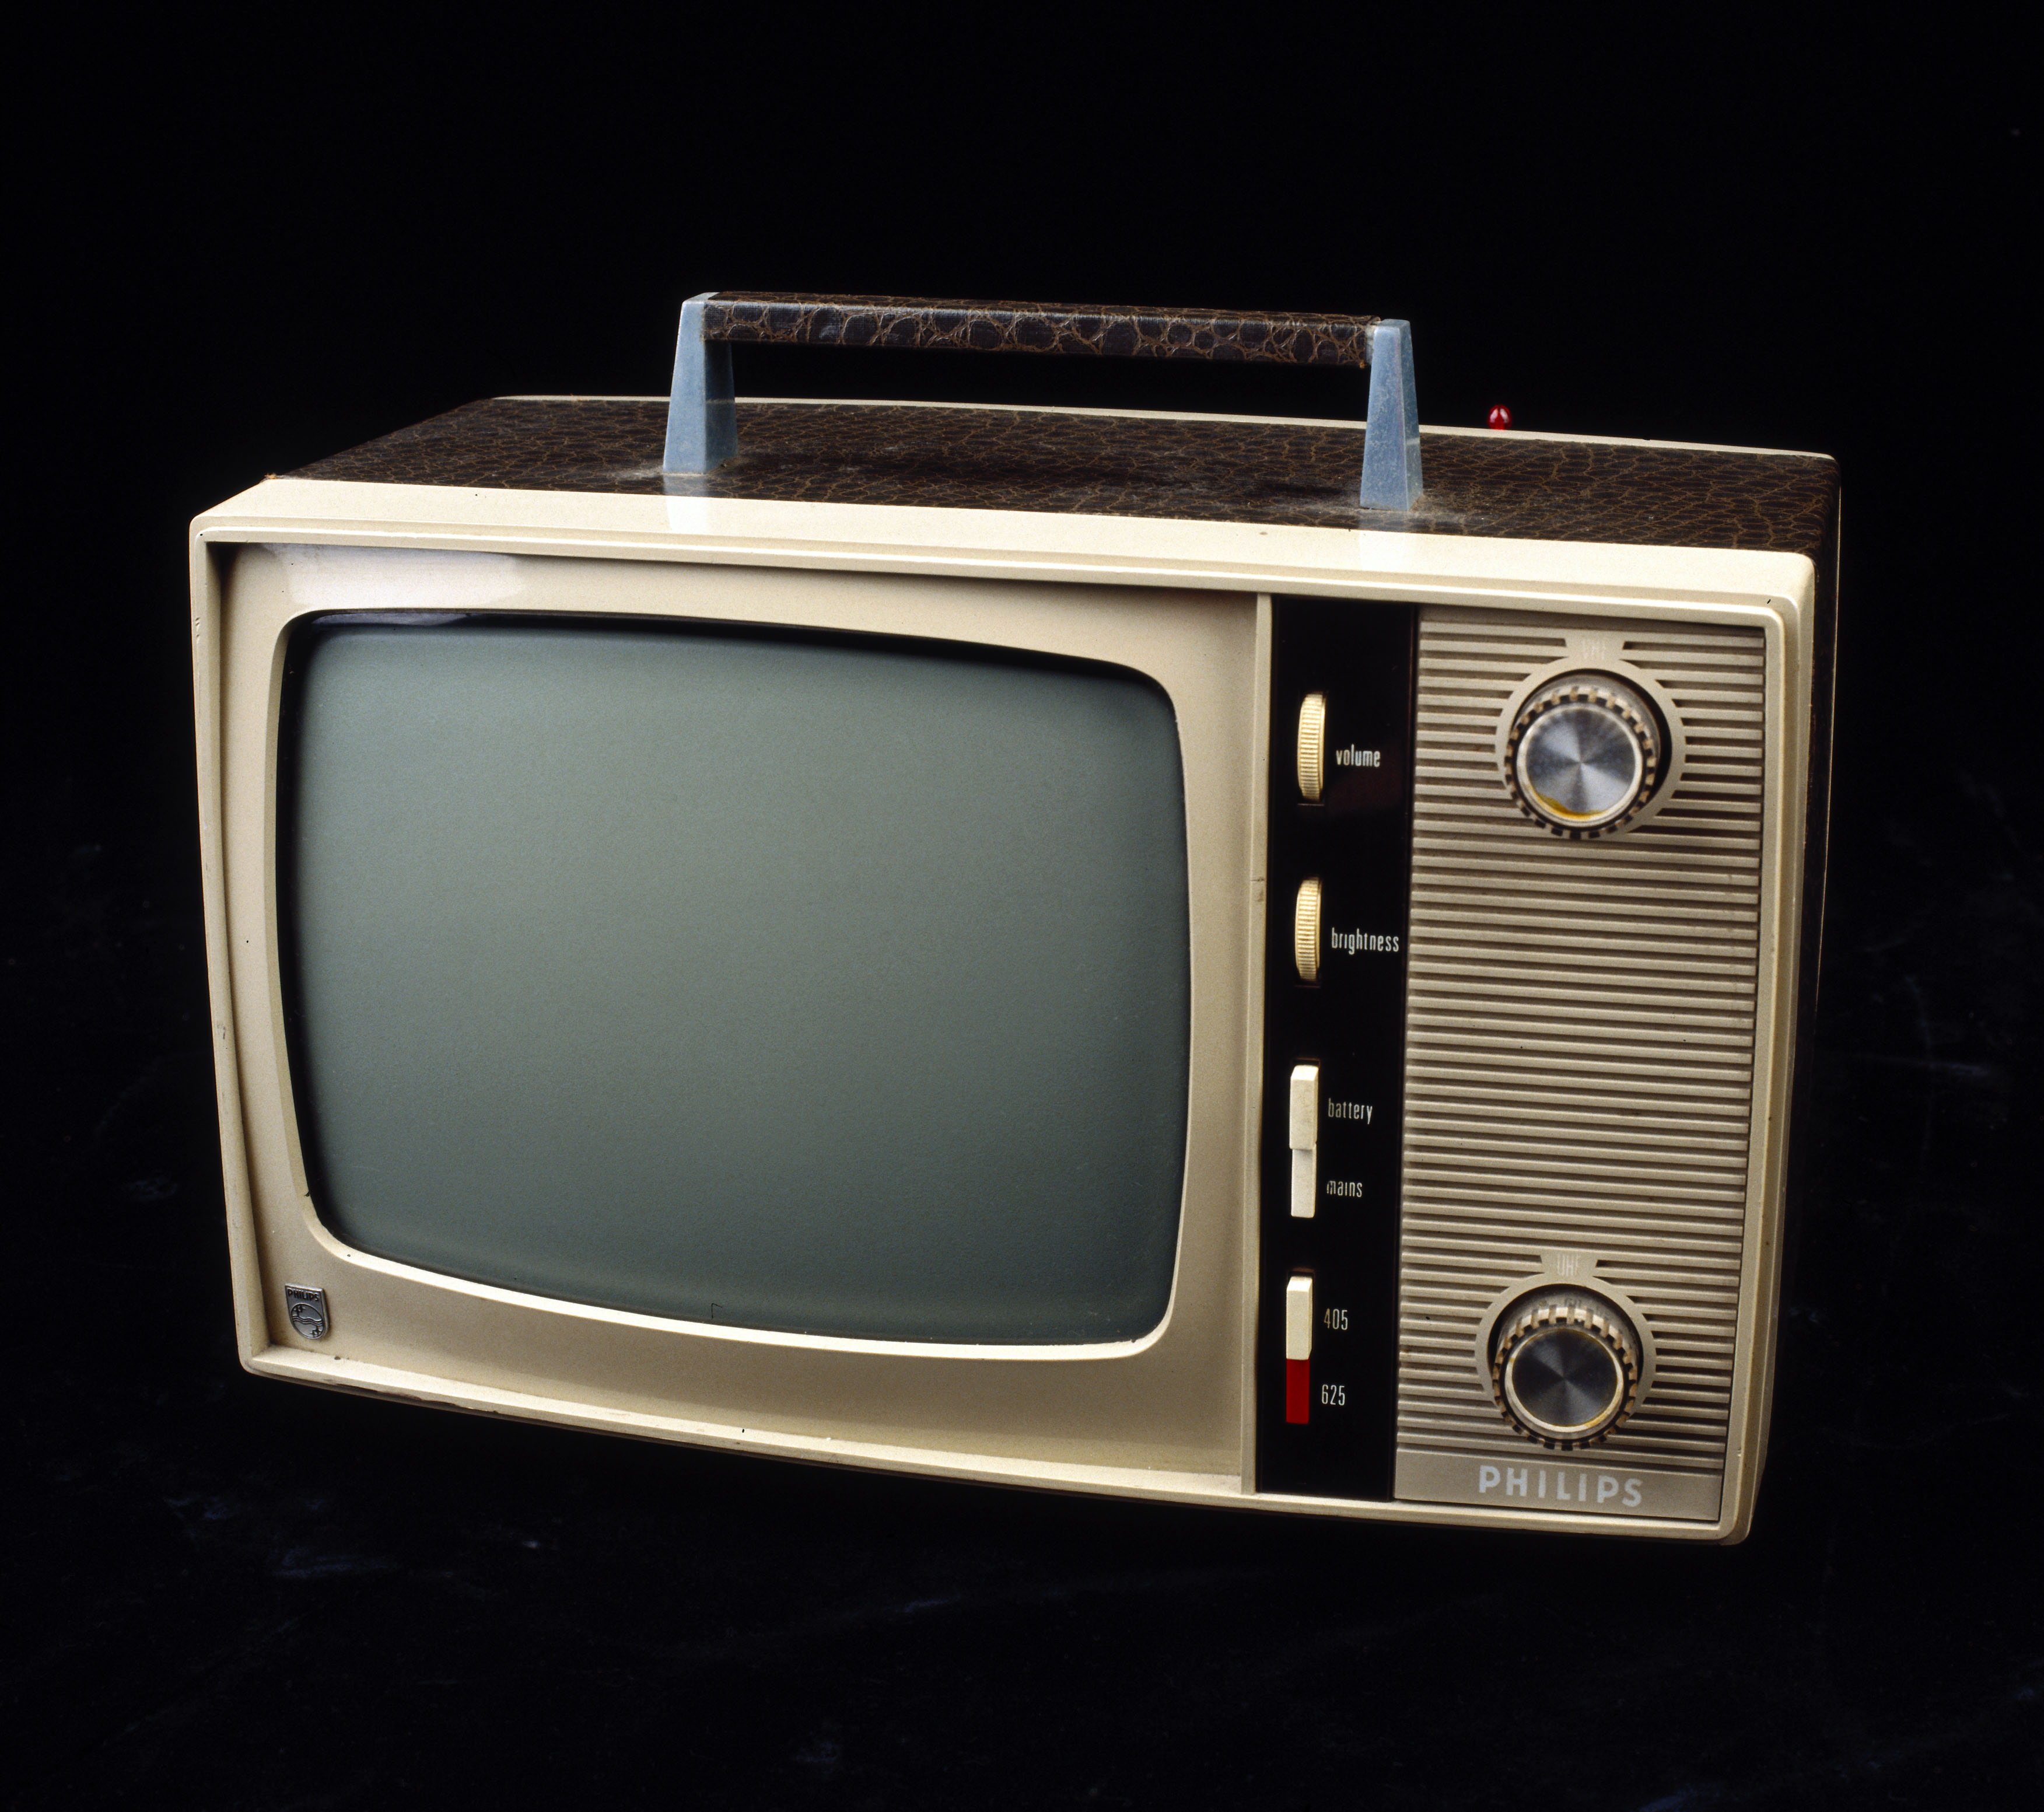 UNITED KINGDOM - AUGUST 04:  This dual standard 405/625 line television set with a 12 inch screen was one of the first truly